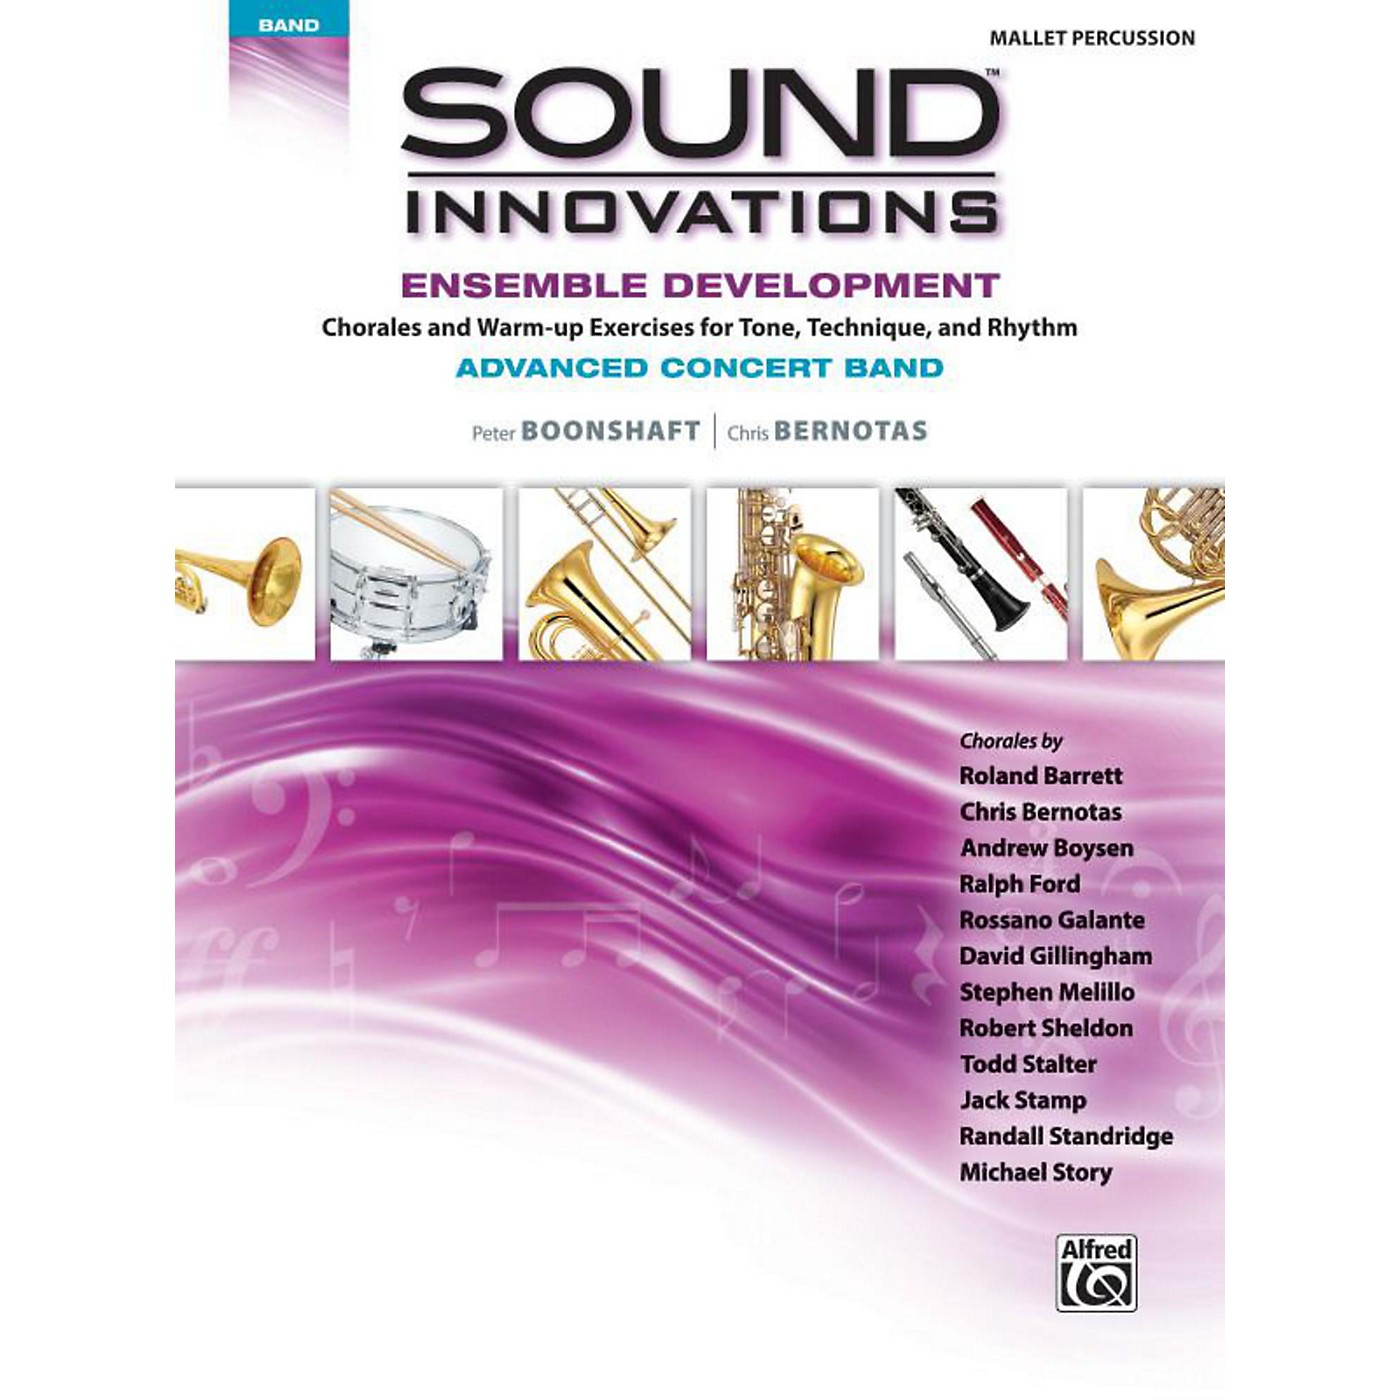 Alfred Sound Innovations Concert Band Ensemble Development Advanced Mallet Percussion thumbnail